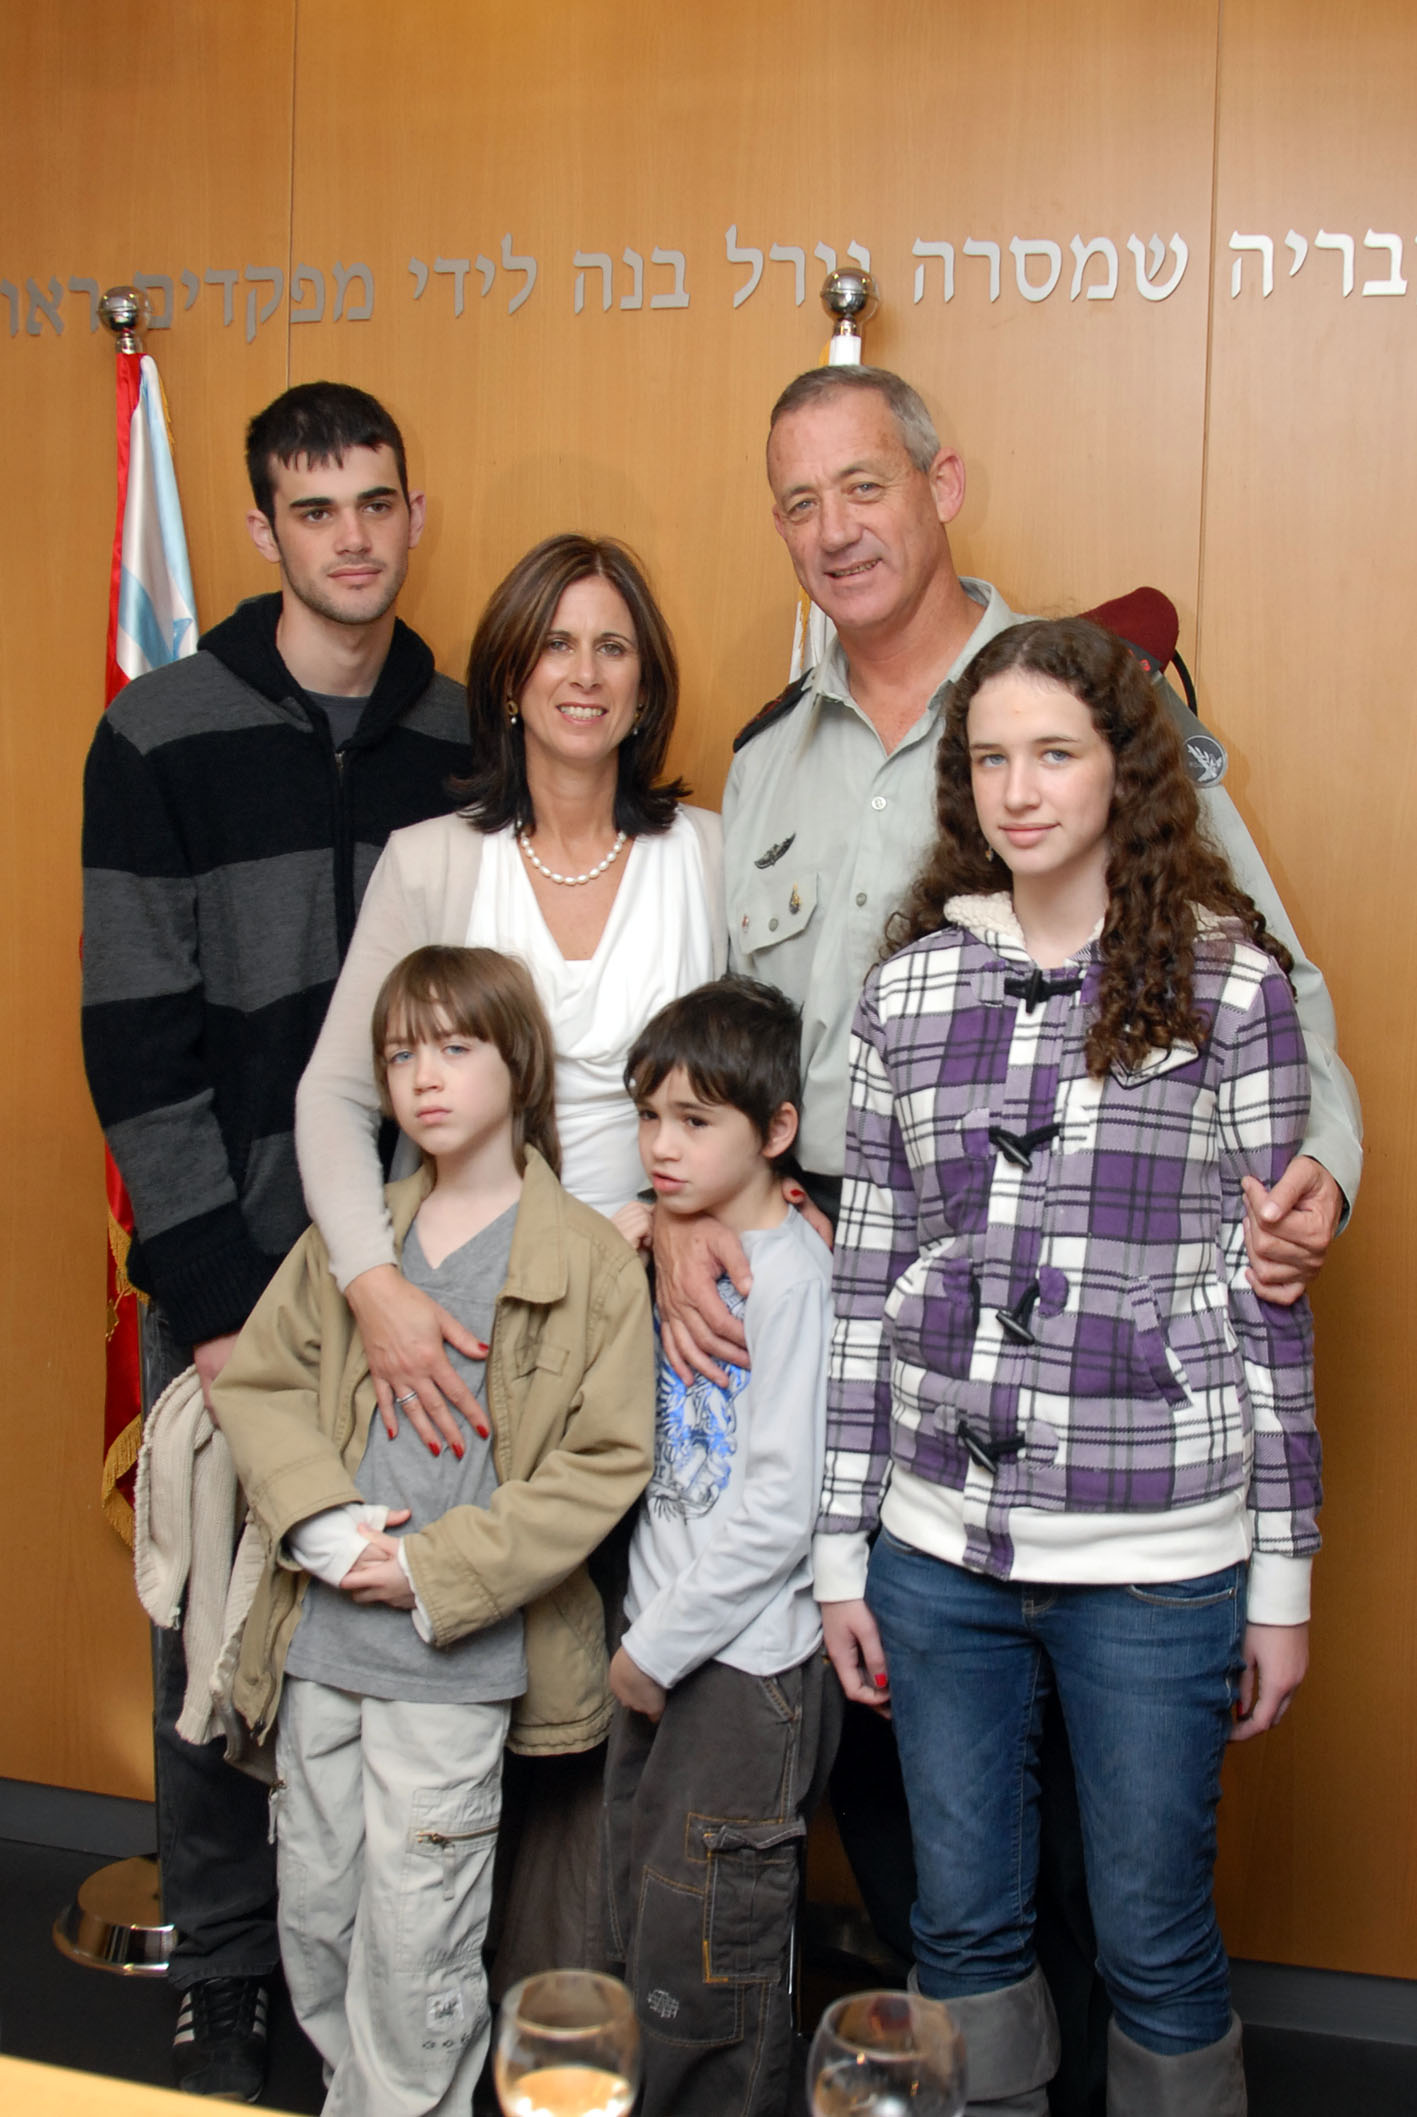 Lieutenant General Benny Gantz and Family